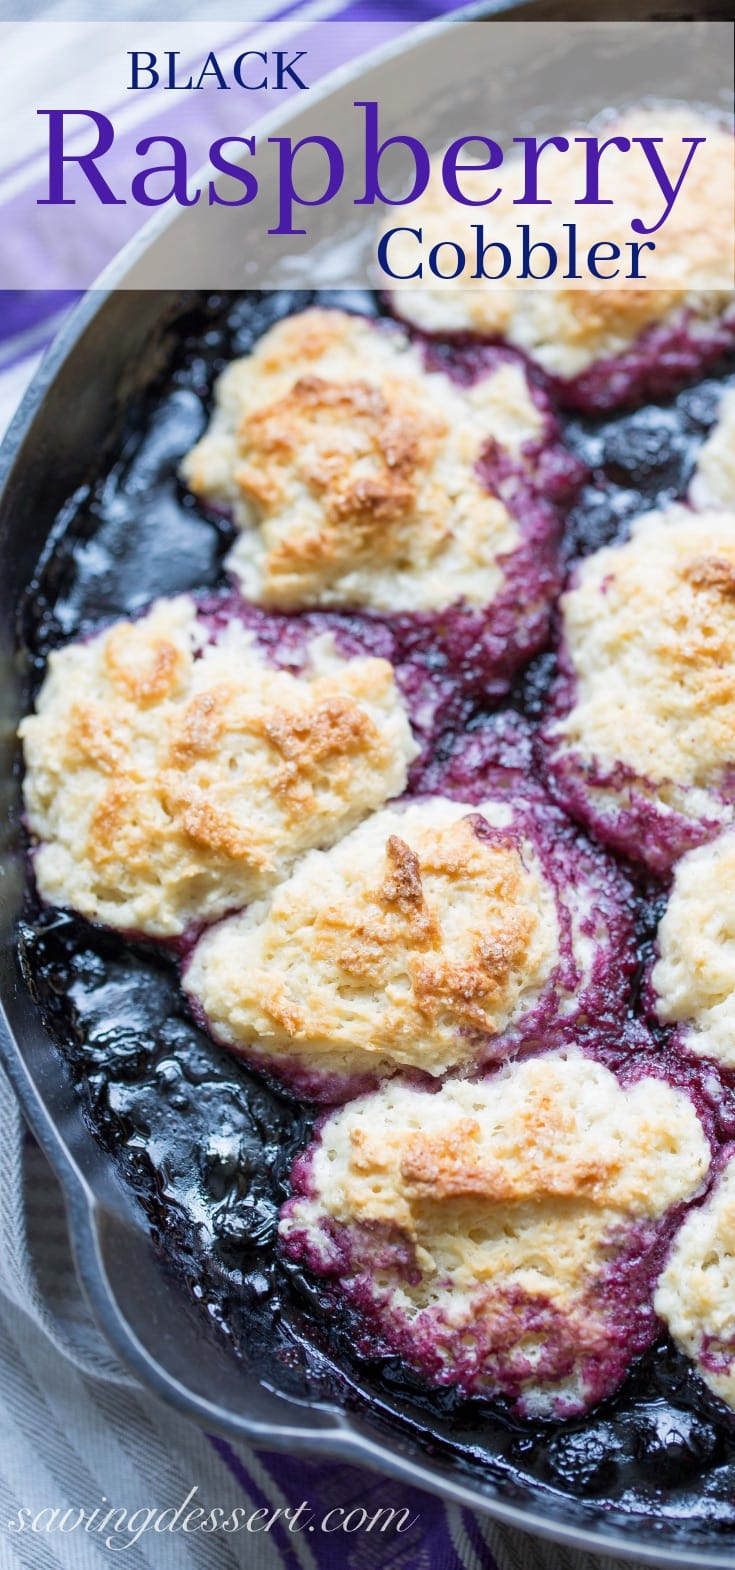 A cast iron skillet with black raspberry cobbler